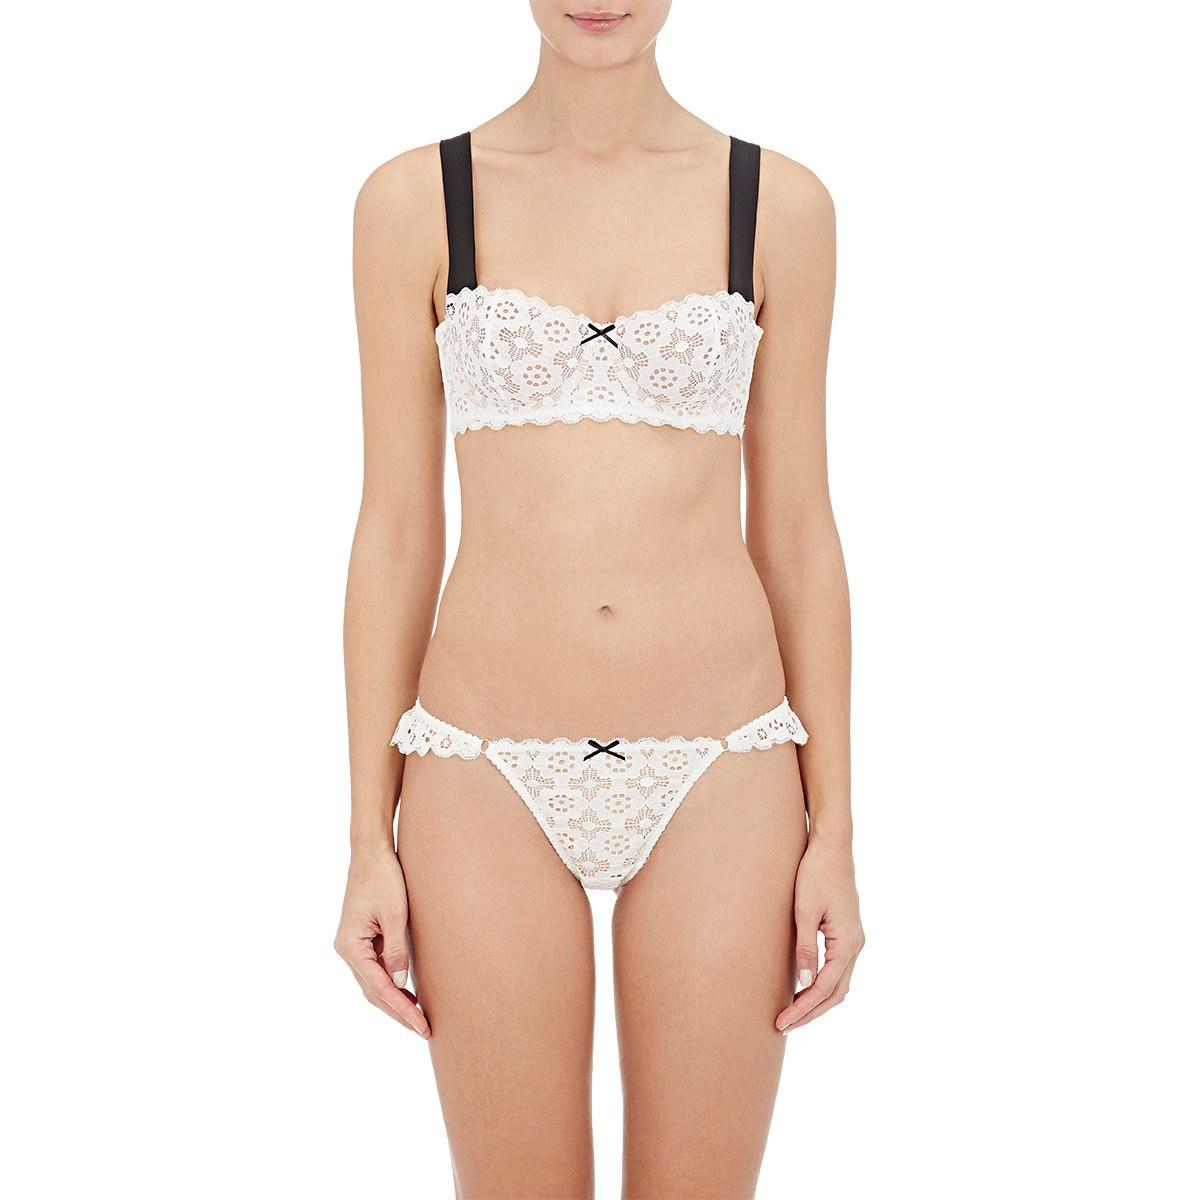 e341cd12c4c34 Fleur du Mal Crochet Lace Balconette Bra in White - Lyst